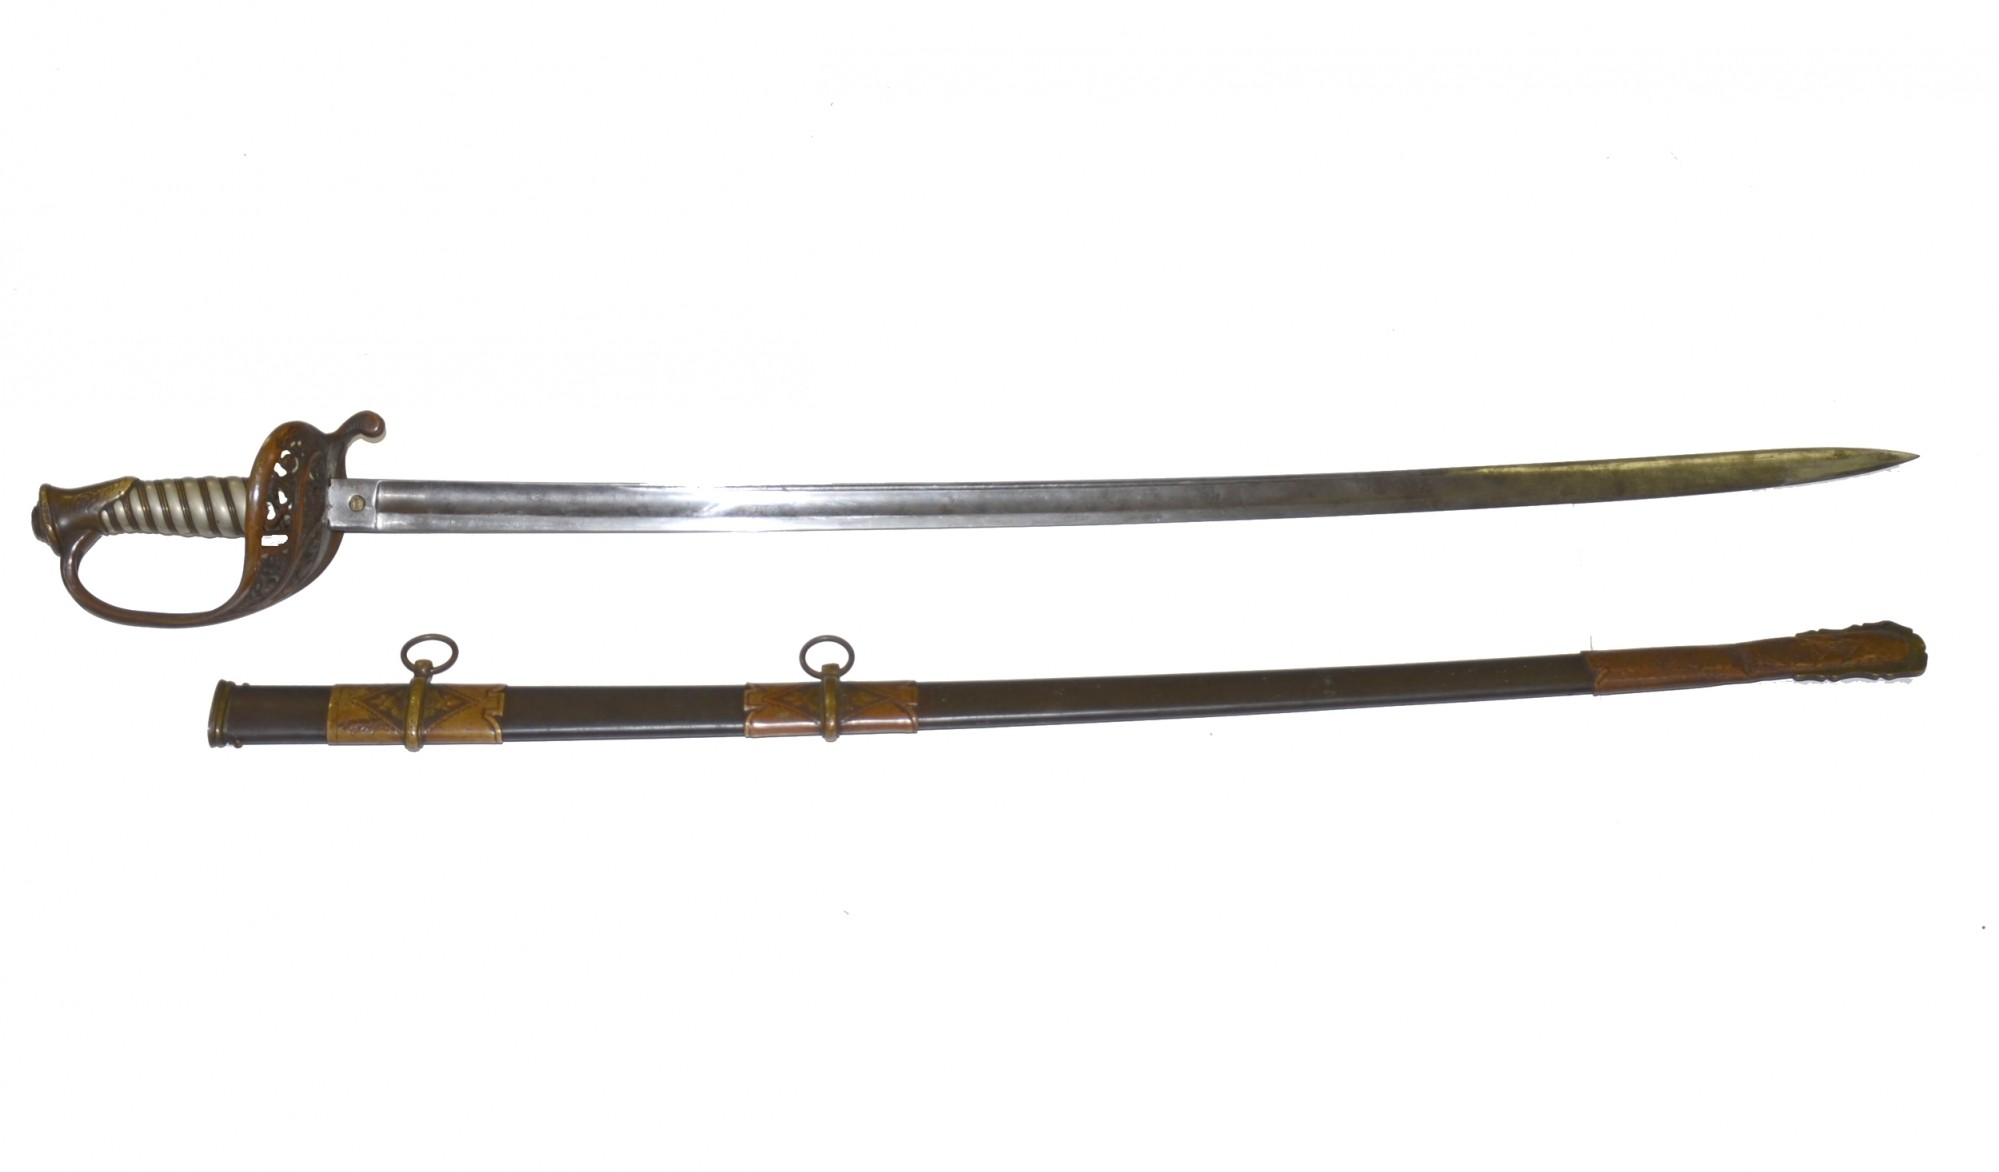 IMPORTED PRESENTATION GRADE MODEL 1850 STAFF & FIELD OFFICER'S SWORD ID'D TO 134TH ILLINOIS OFFICER